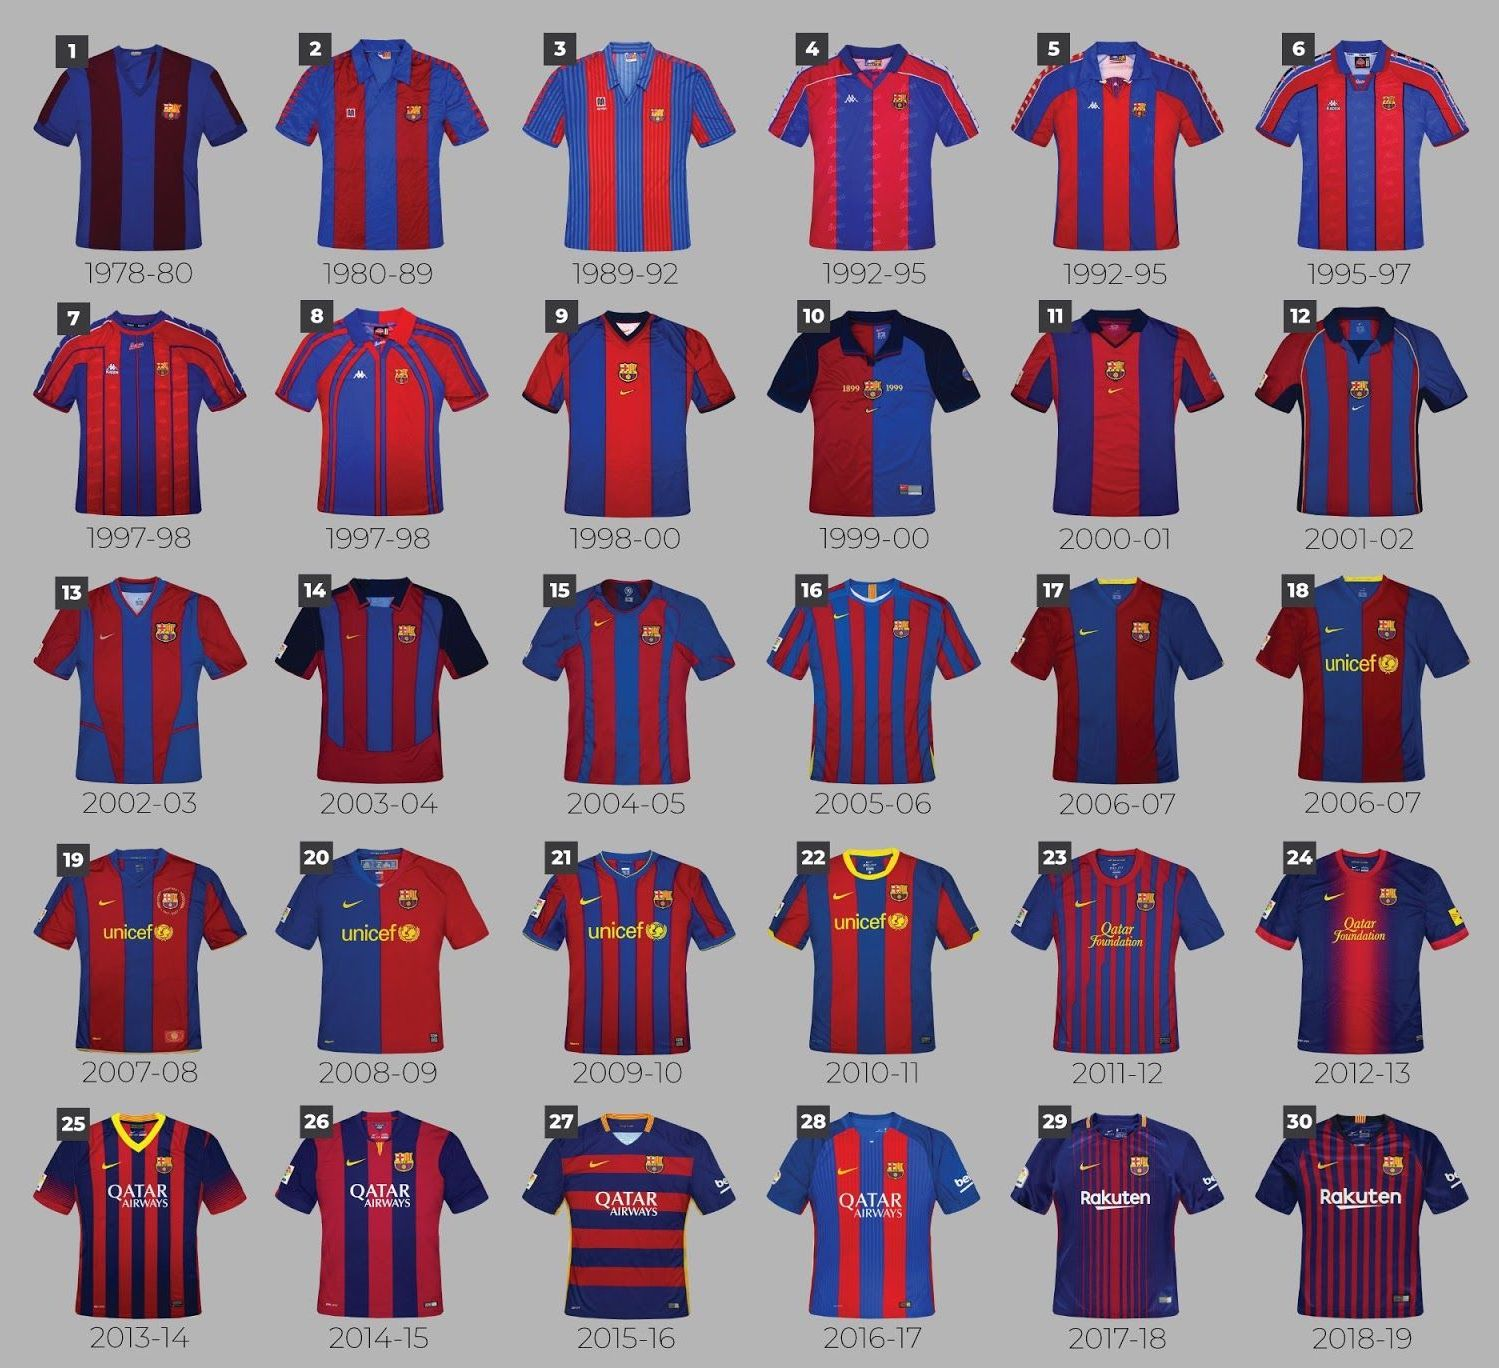 the 11 greatest barcelona kits of all time ranked barcablog the 11 greatest barcelona kits of all